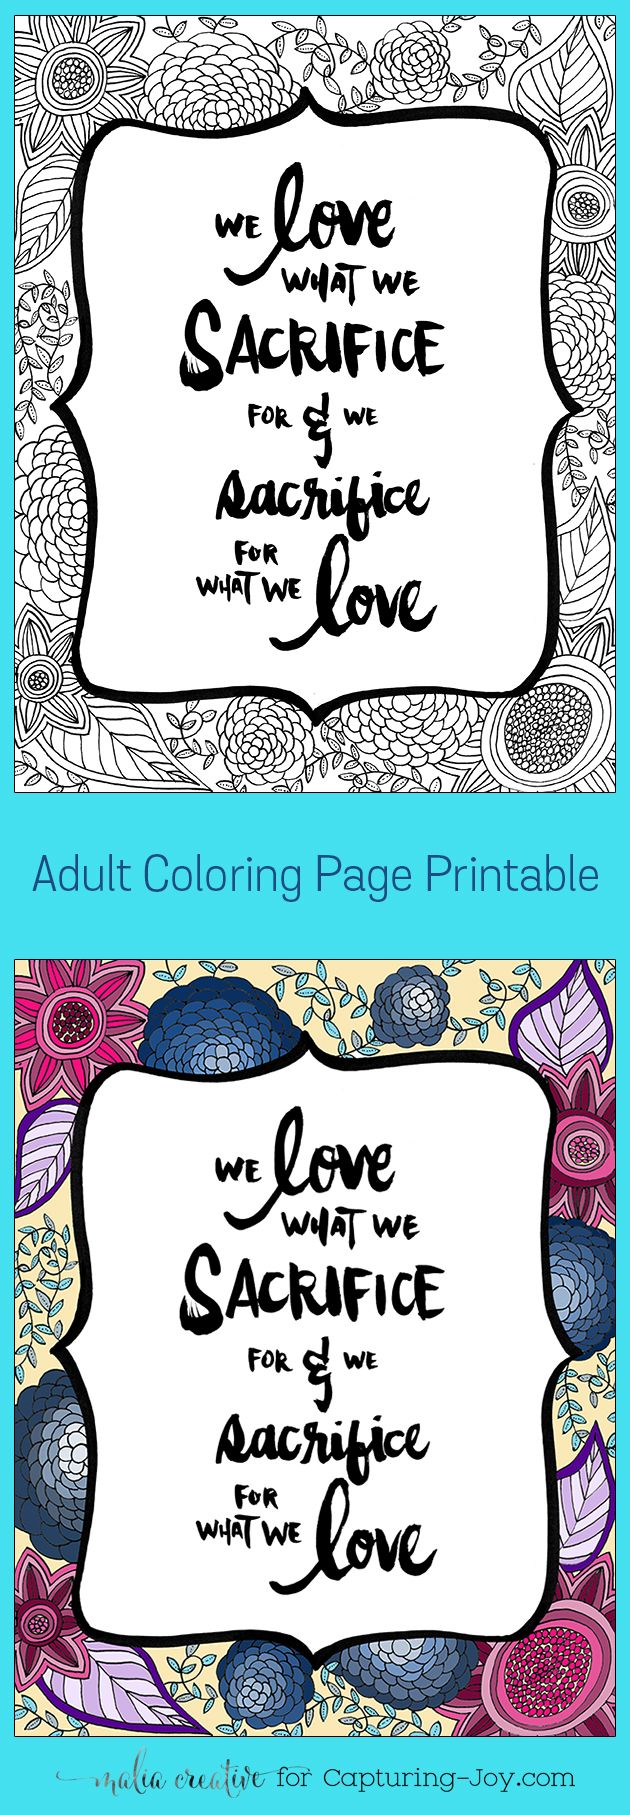 Herdier pokemon coloring pages - Adult Inspirational Coloring Page Free Printable On Capturing Joy Com